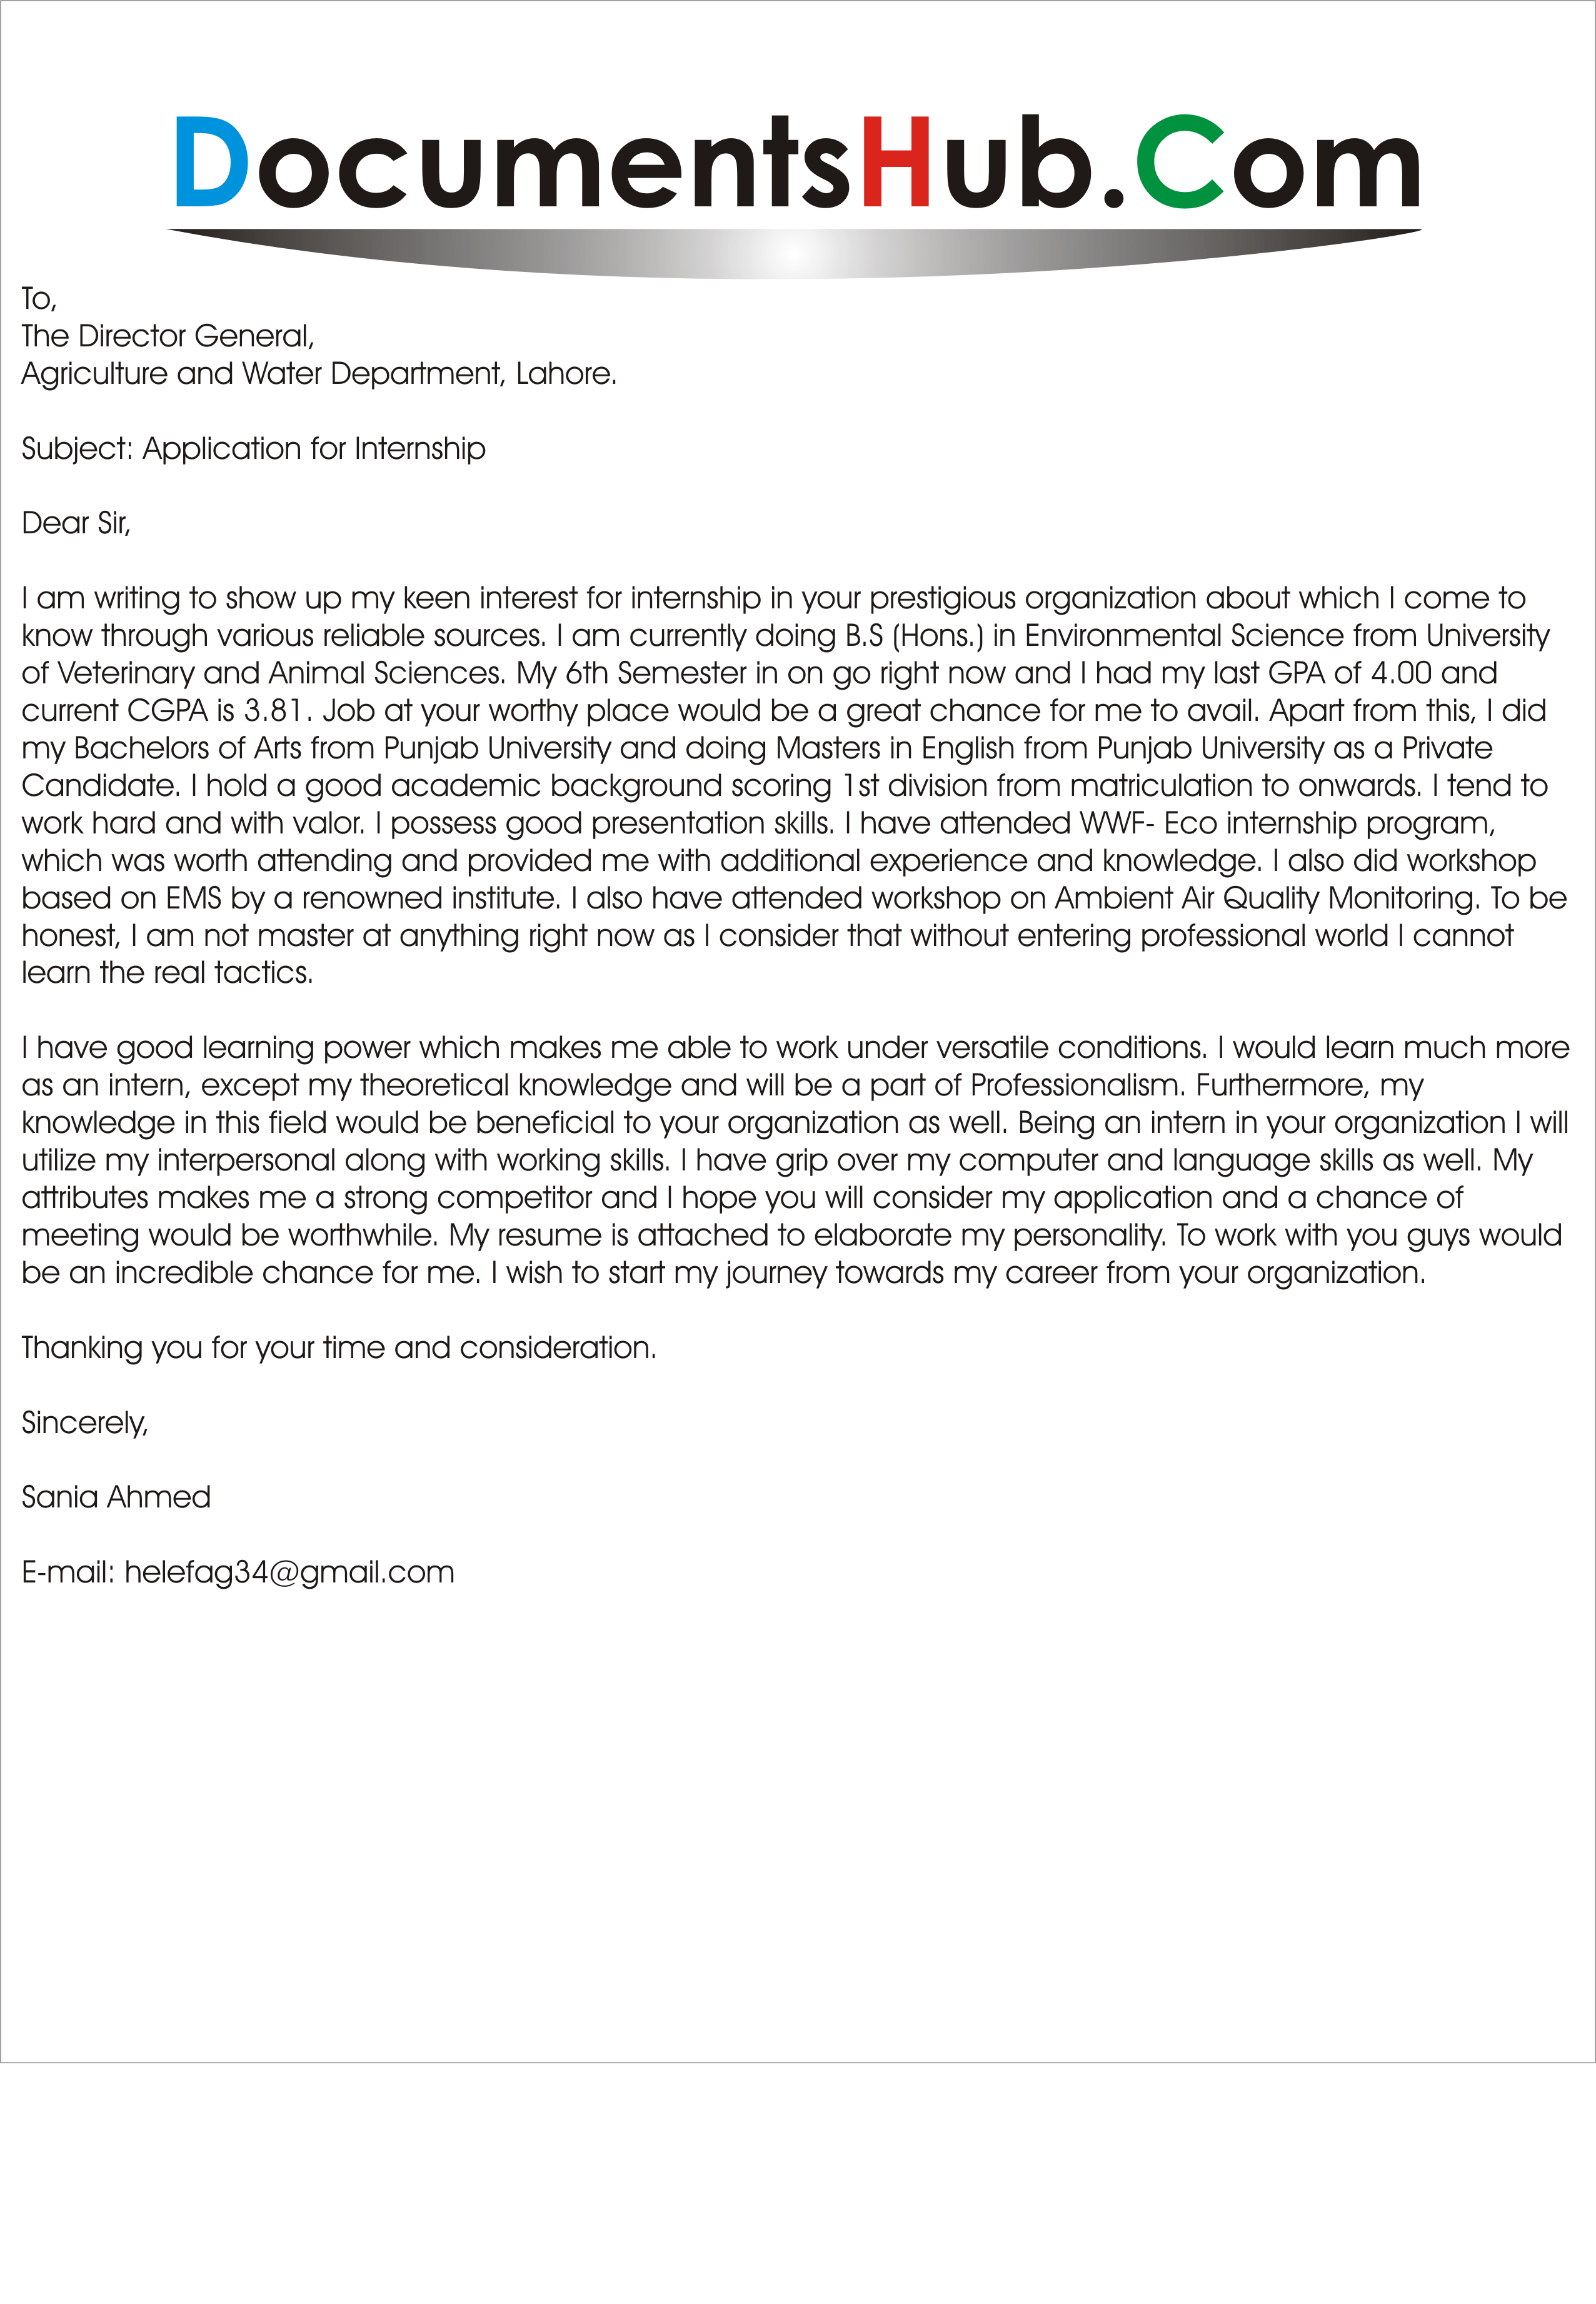 Sales trading and research cover letter